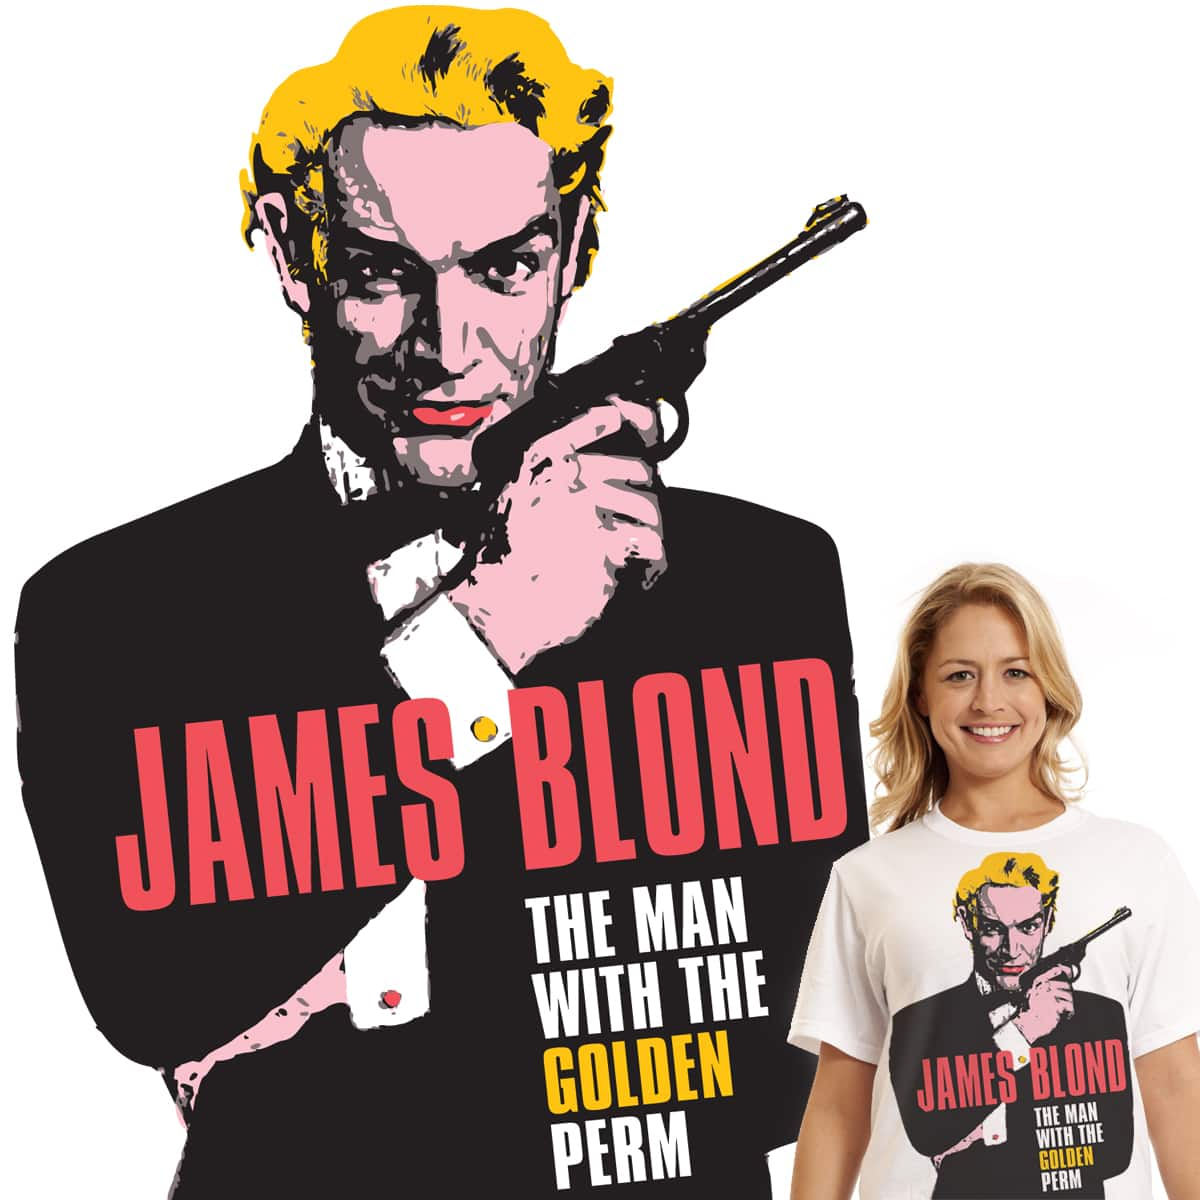 The name's Blond. James Blond by jrgdesign on Threadless